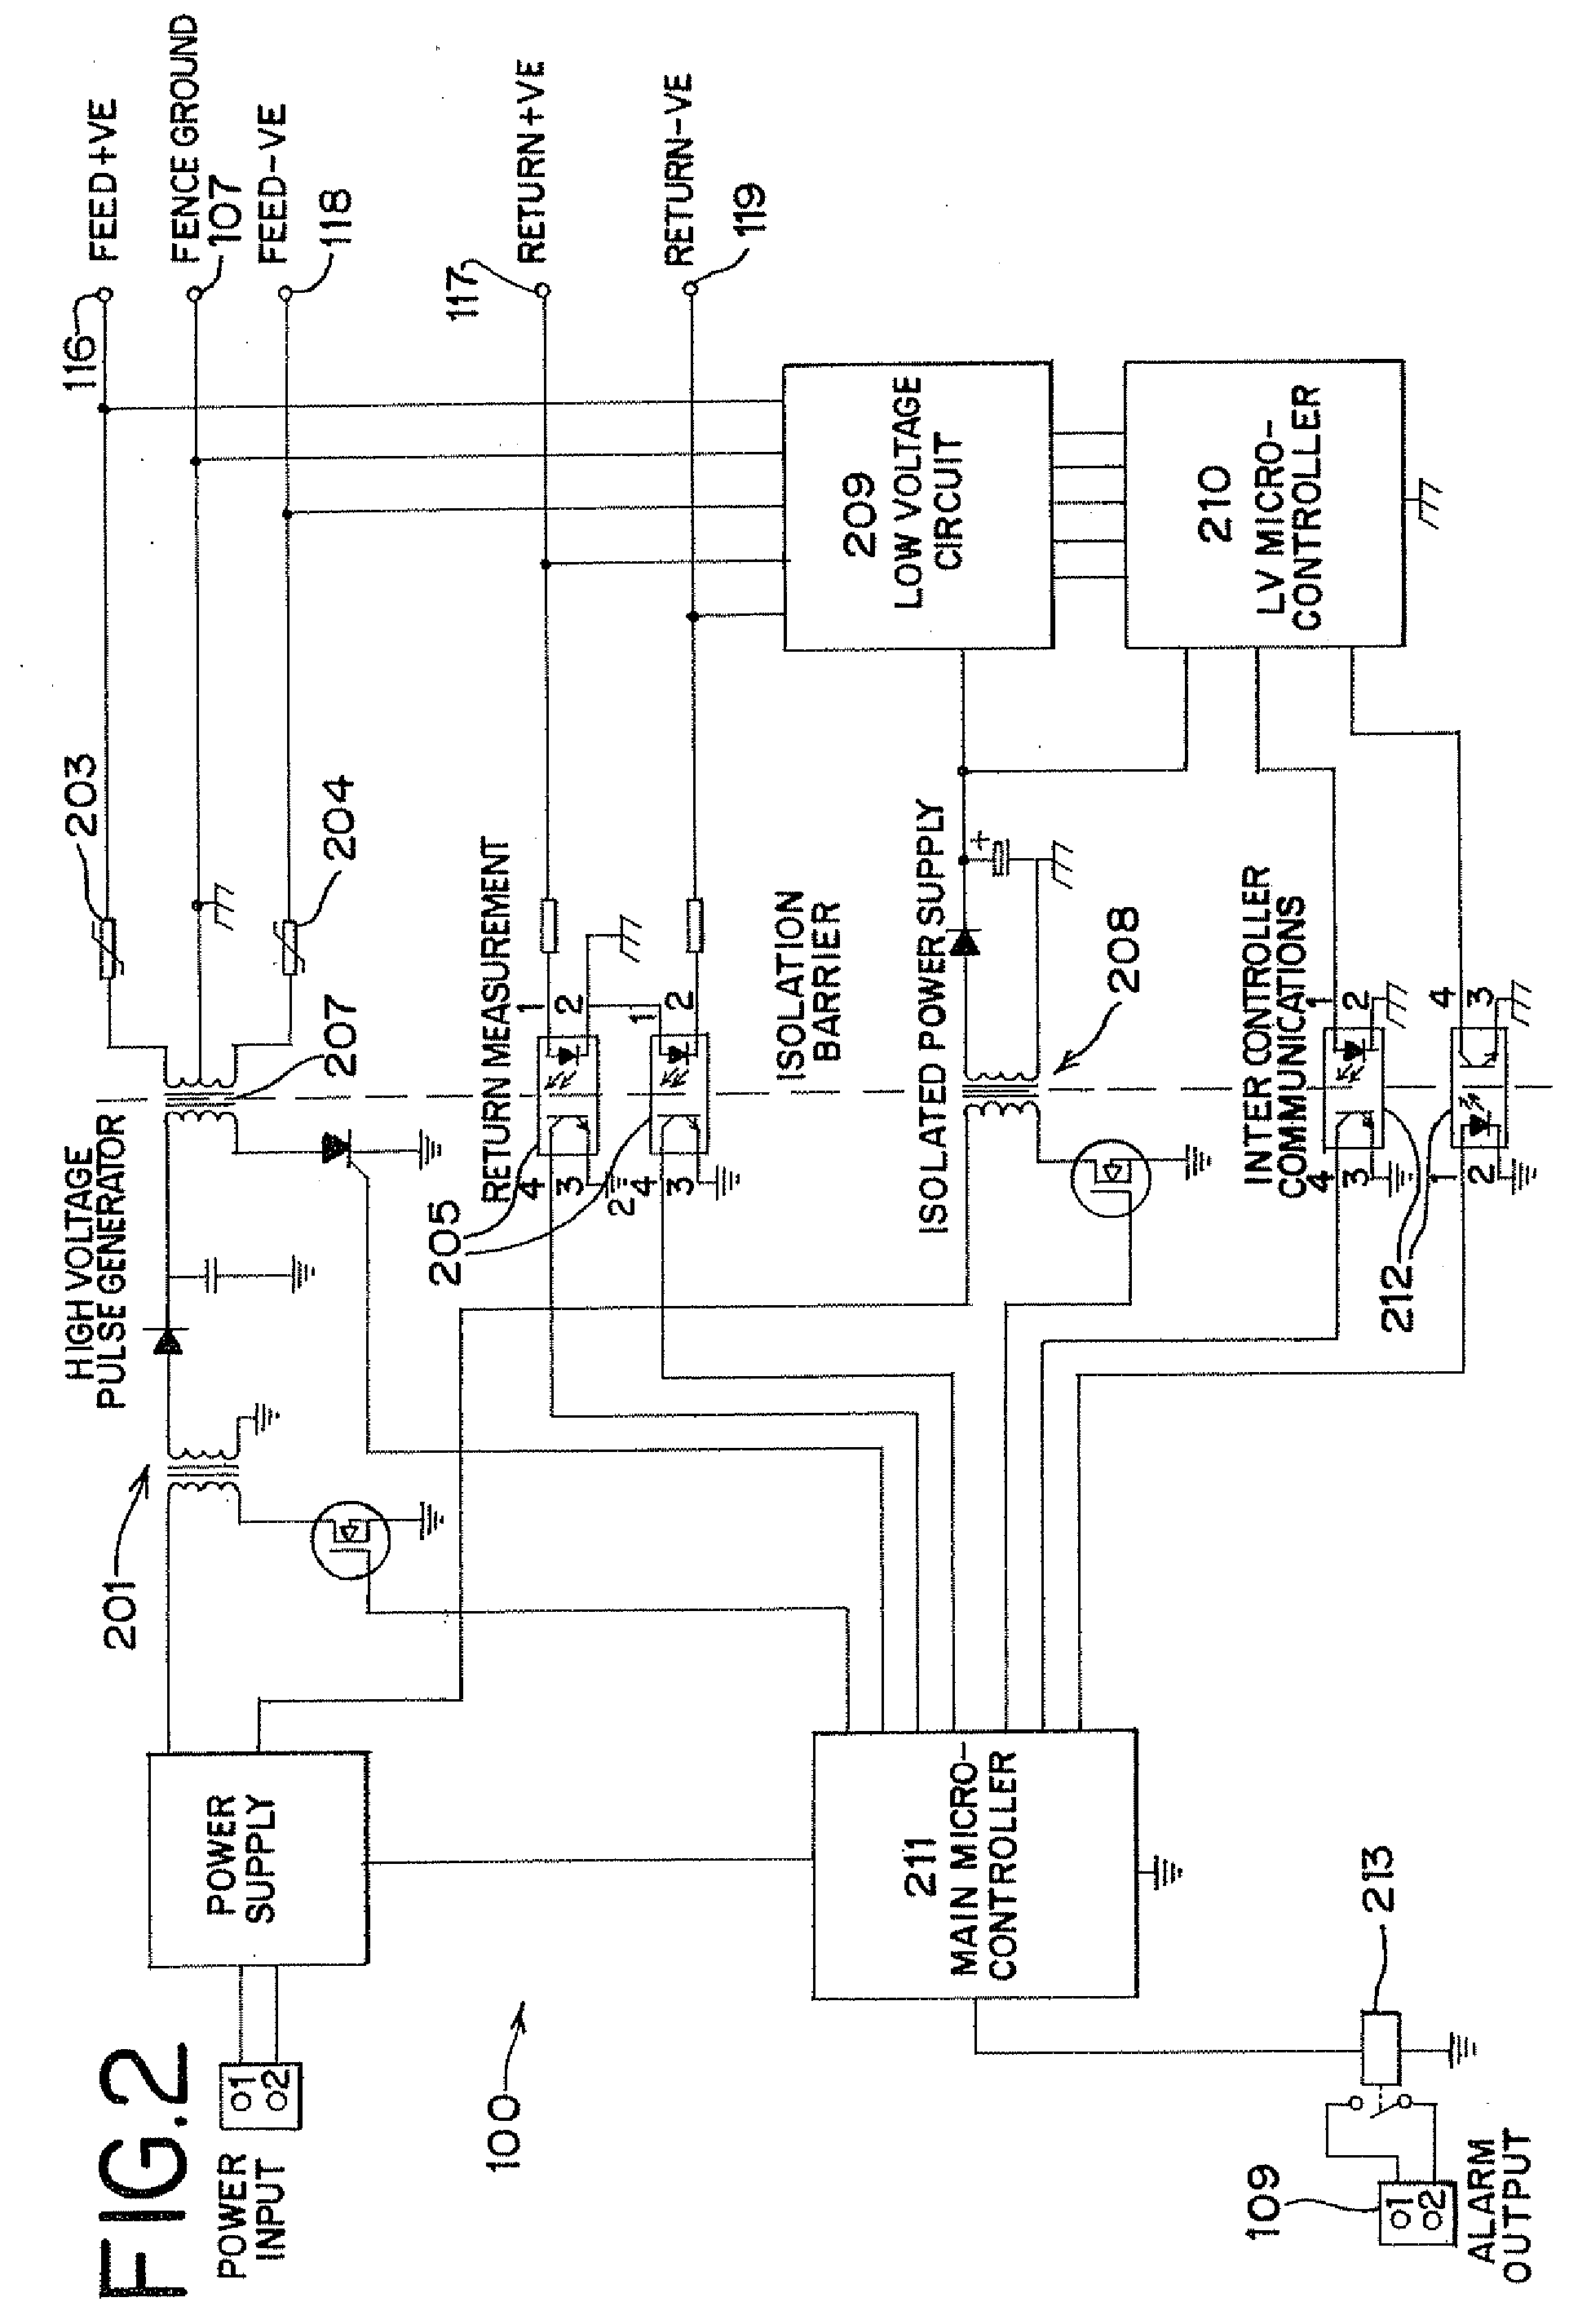 patent us20080186172 - intrusion detection system for electric fences